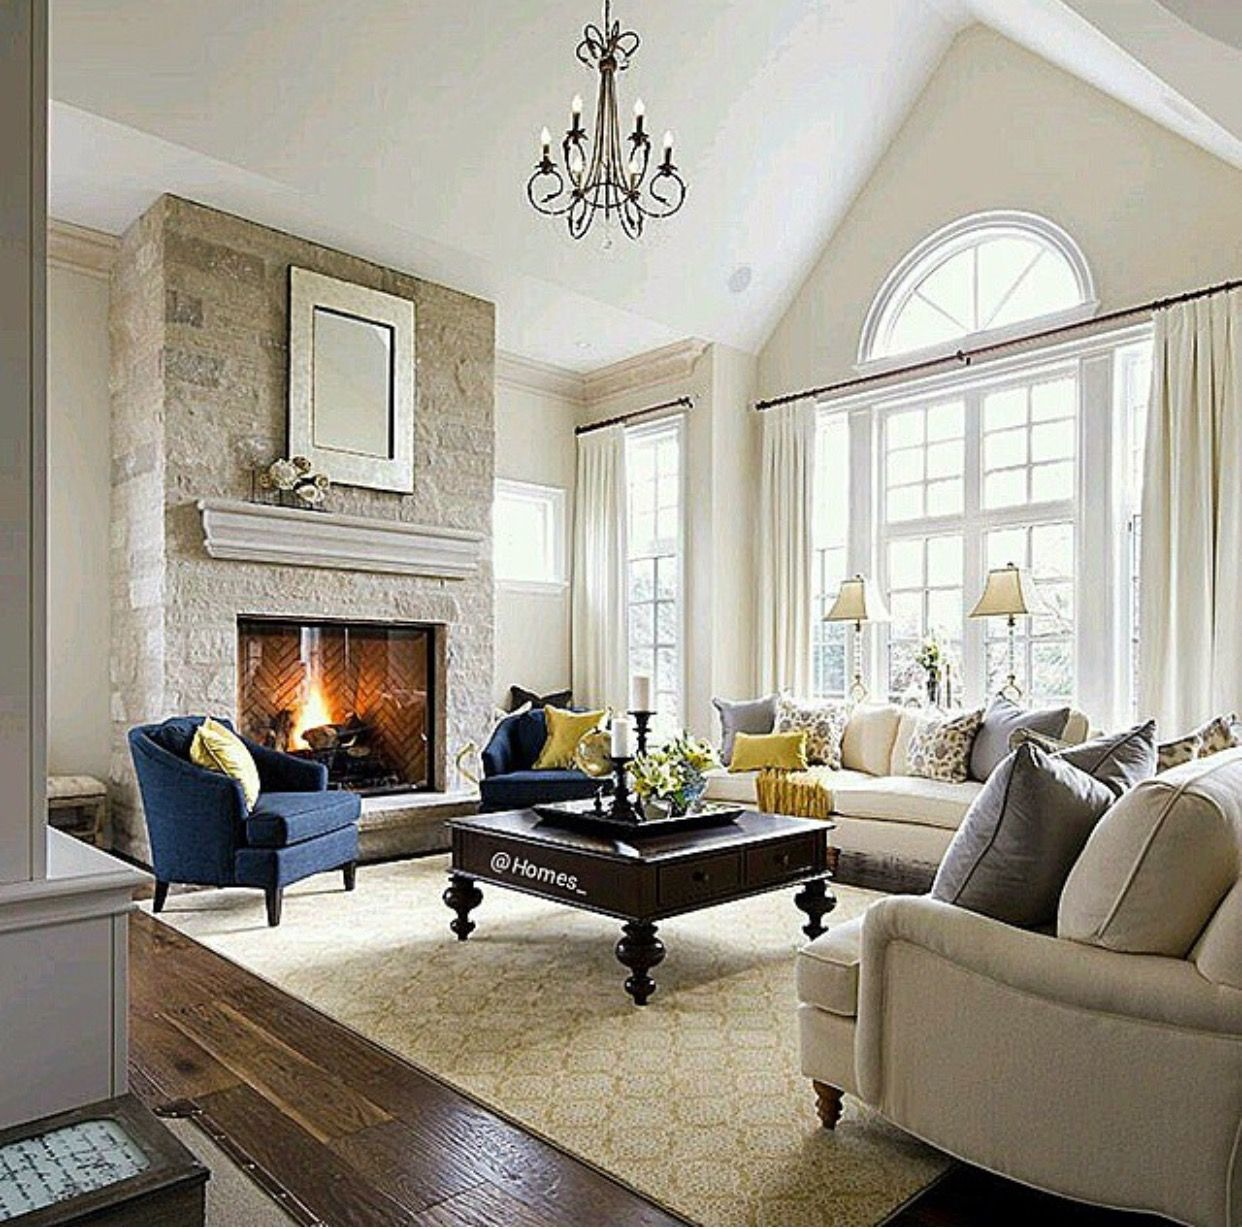 neutral paint color benjamin moore ballet white in